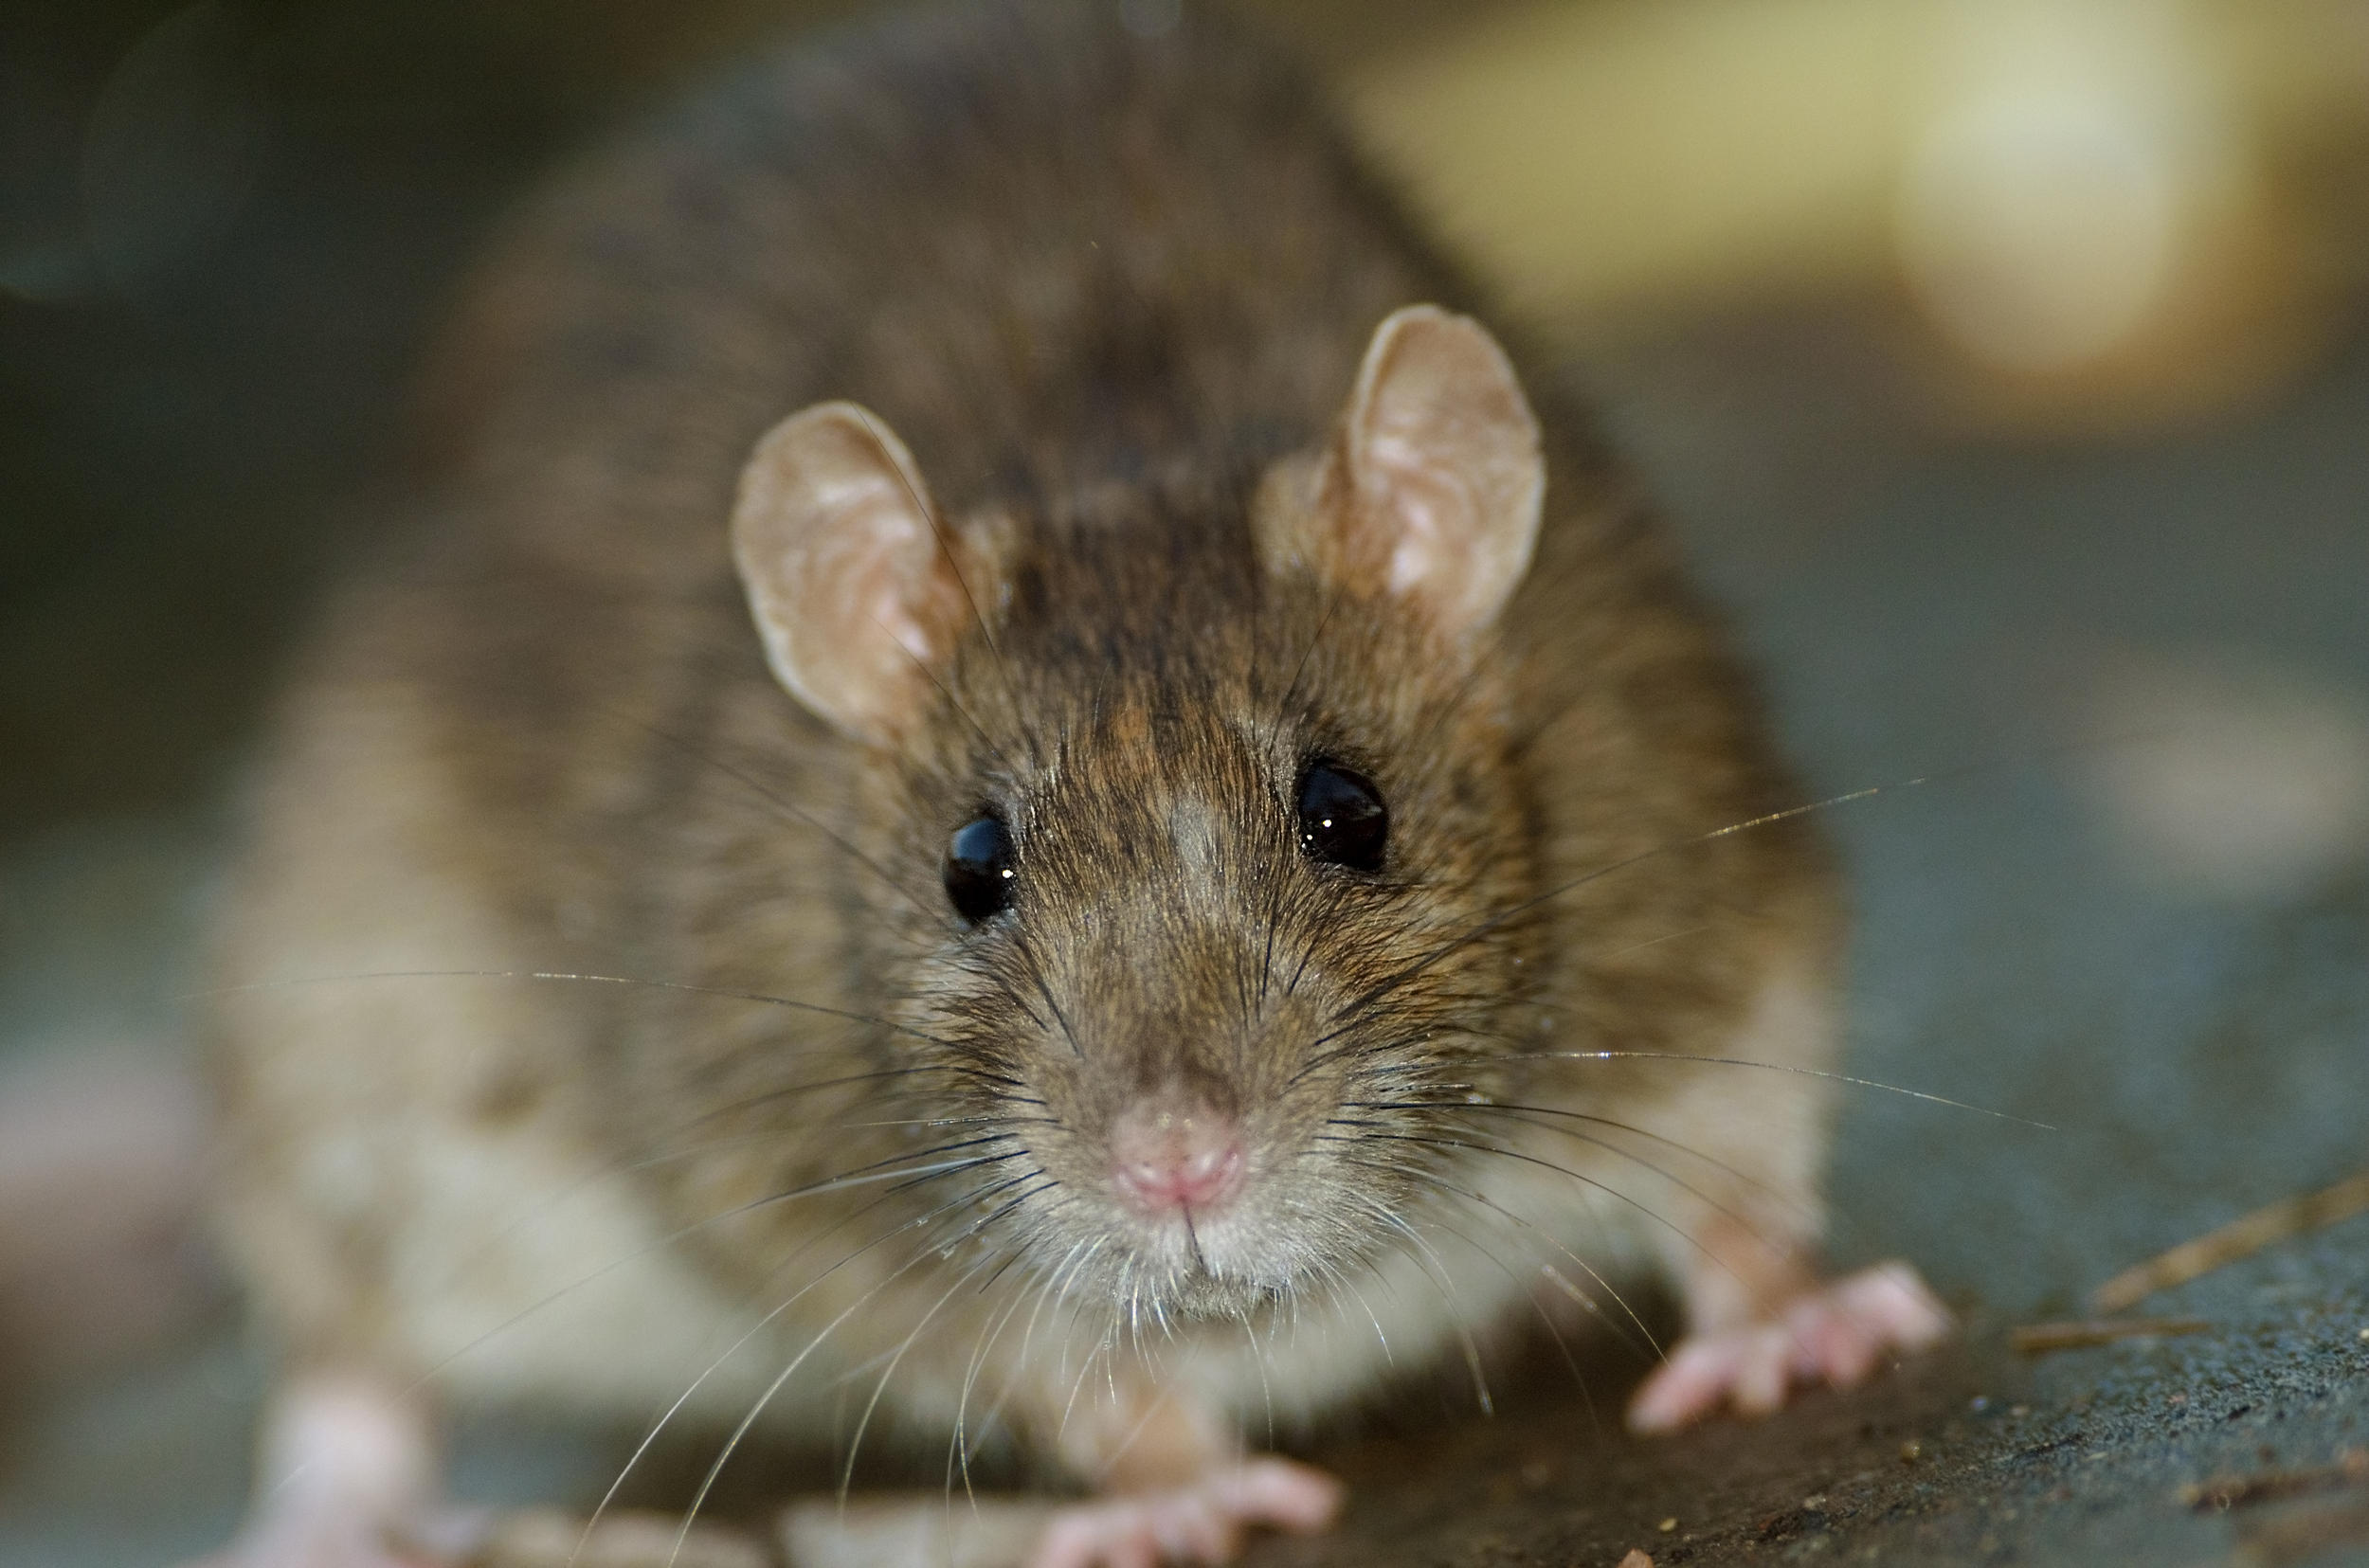 Rat-borne disease